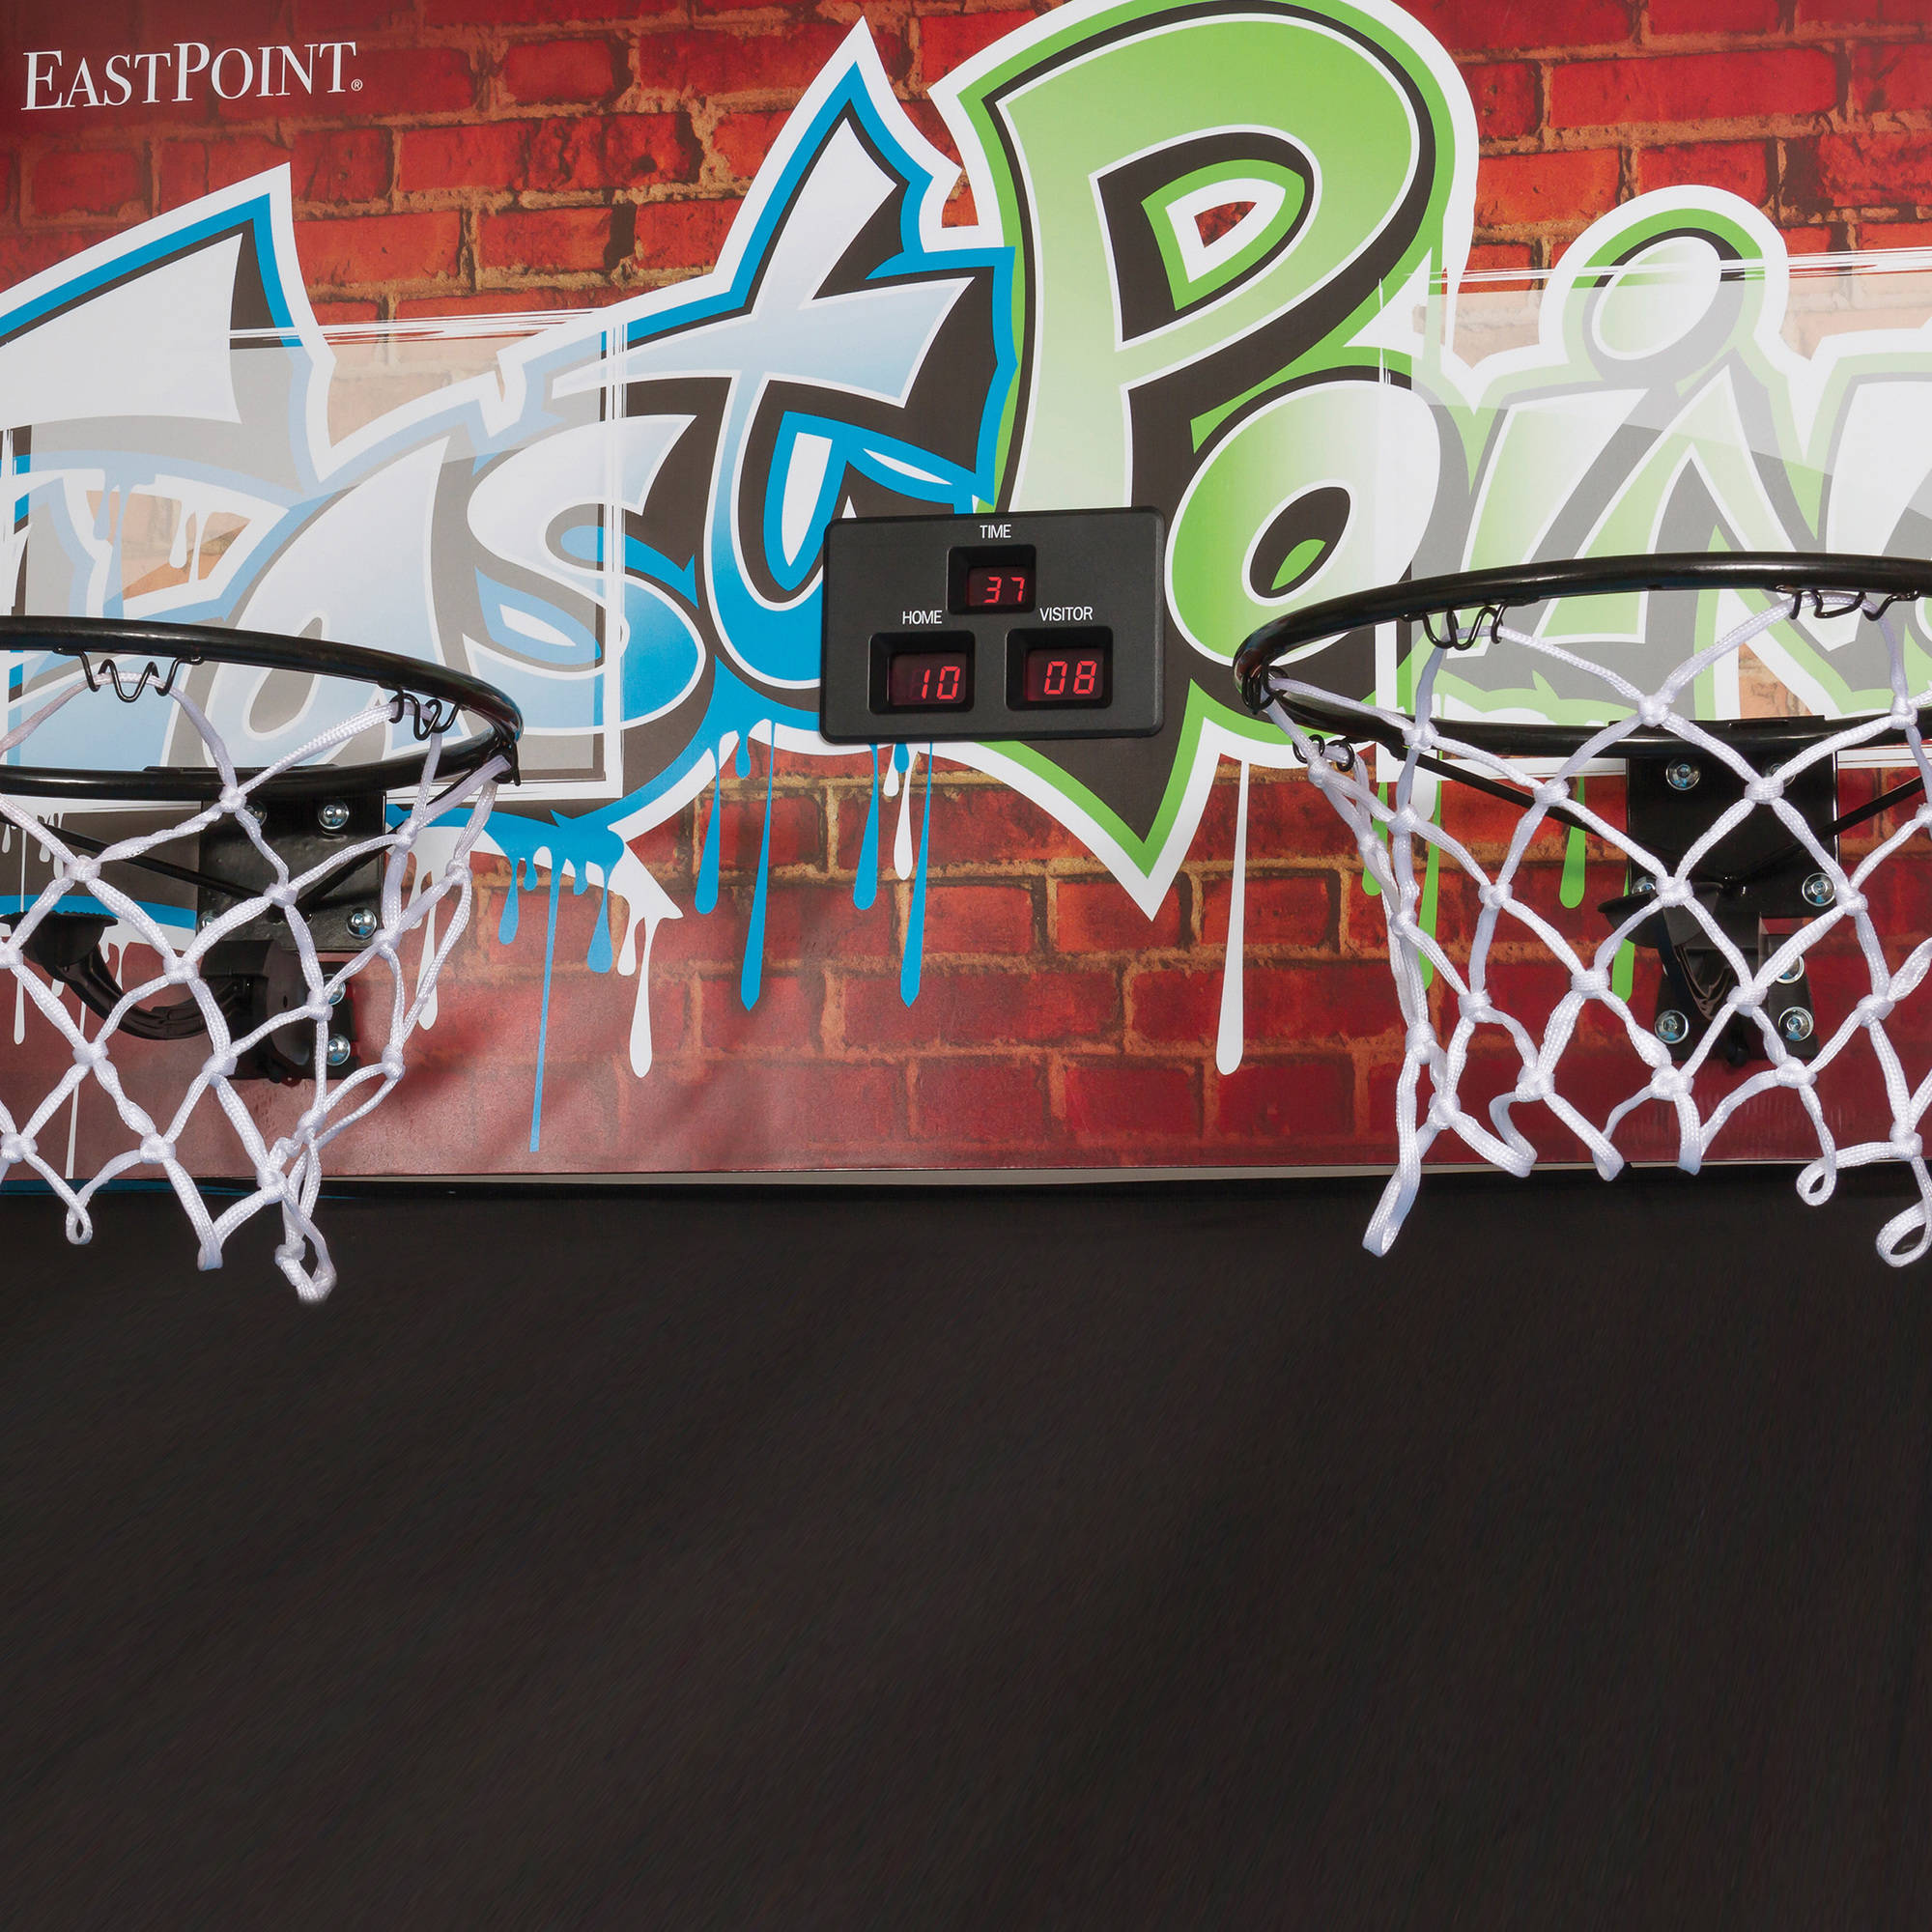 EastPoint Sports Double Shot Basketball Game with LED Scoring and Stadium Sounds (RENT)